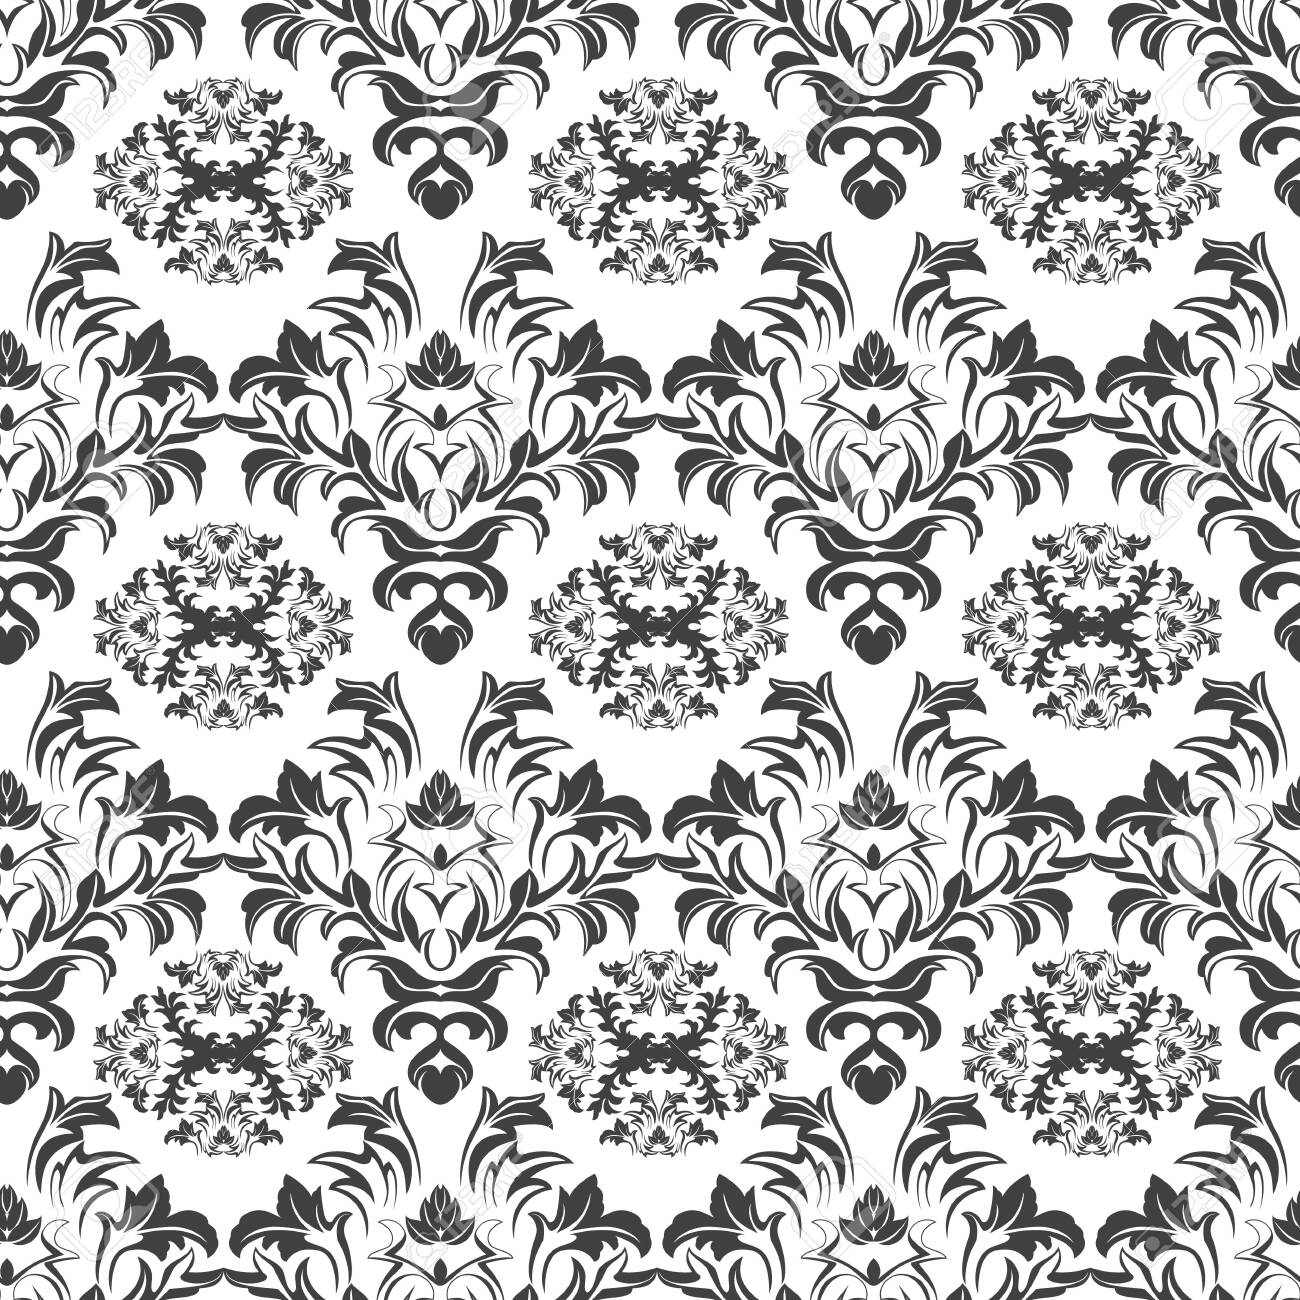 black seamless pattern on white background plants leaves and